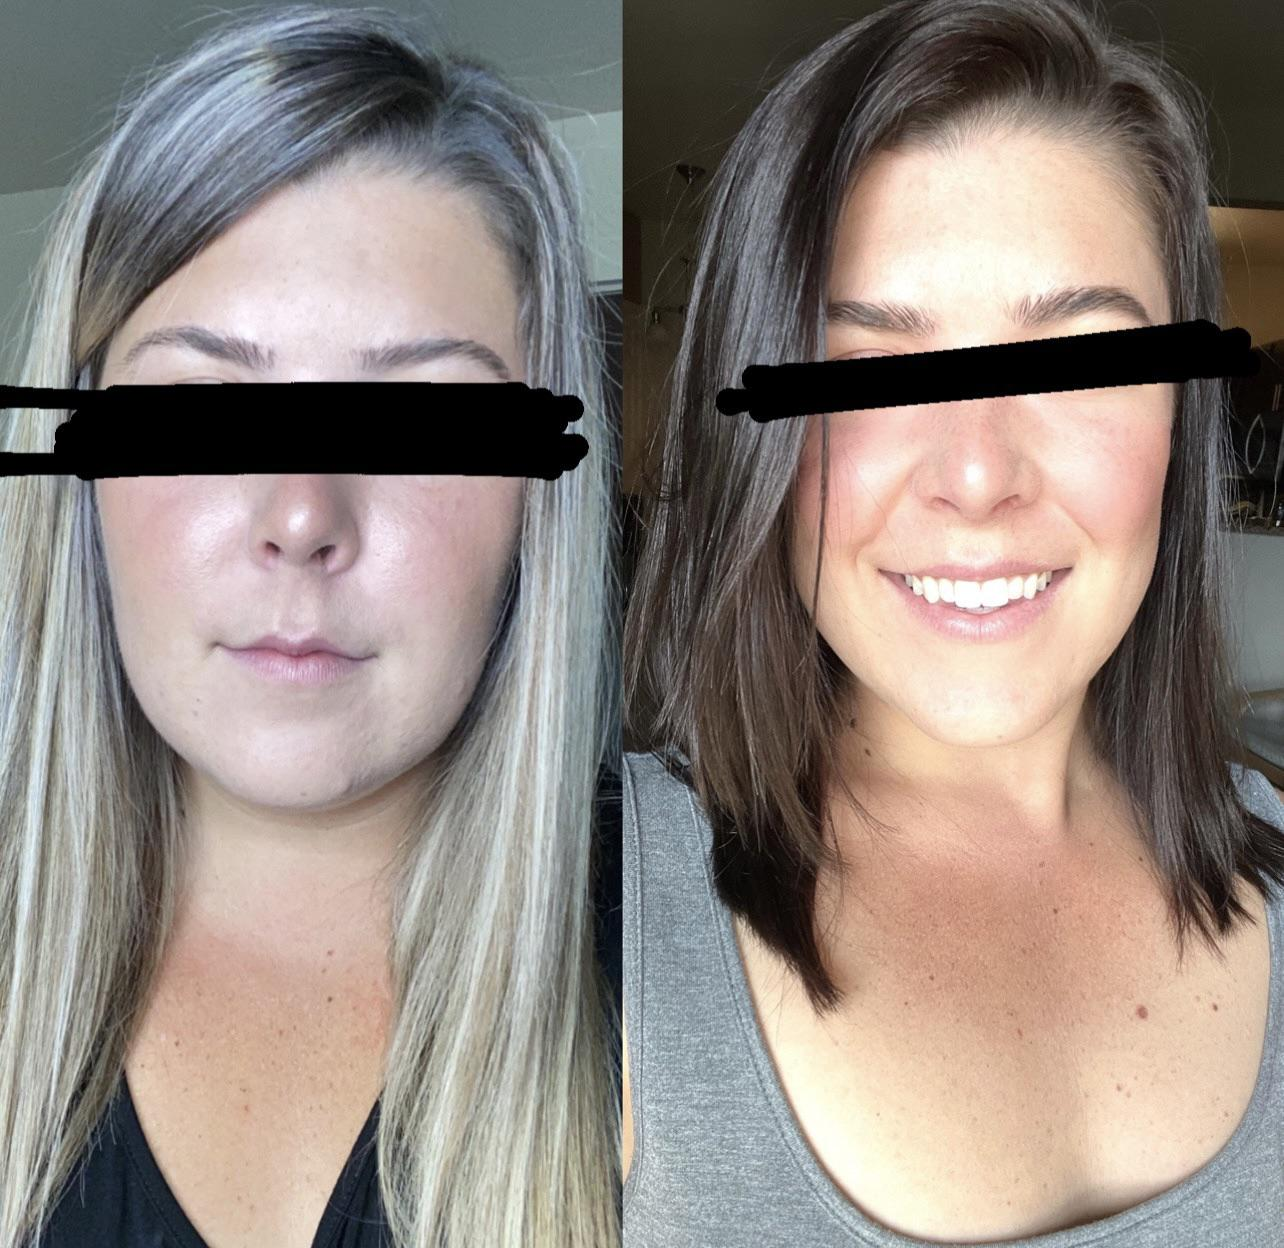 73 lbs Weight Loss Before and After 5 foot 5 Female 221 lbs to 148 lbs